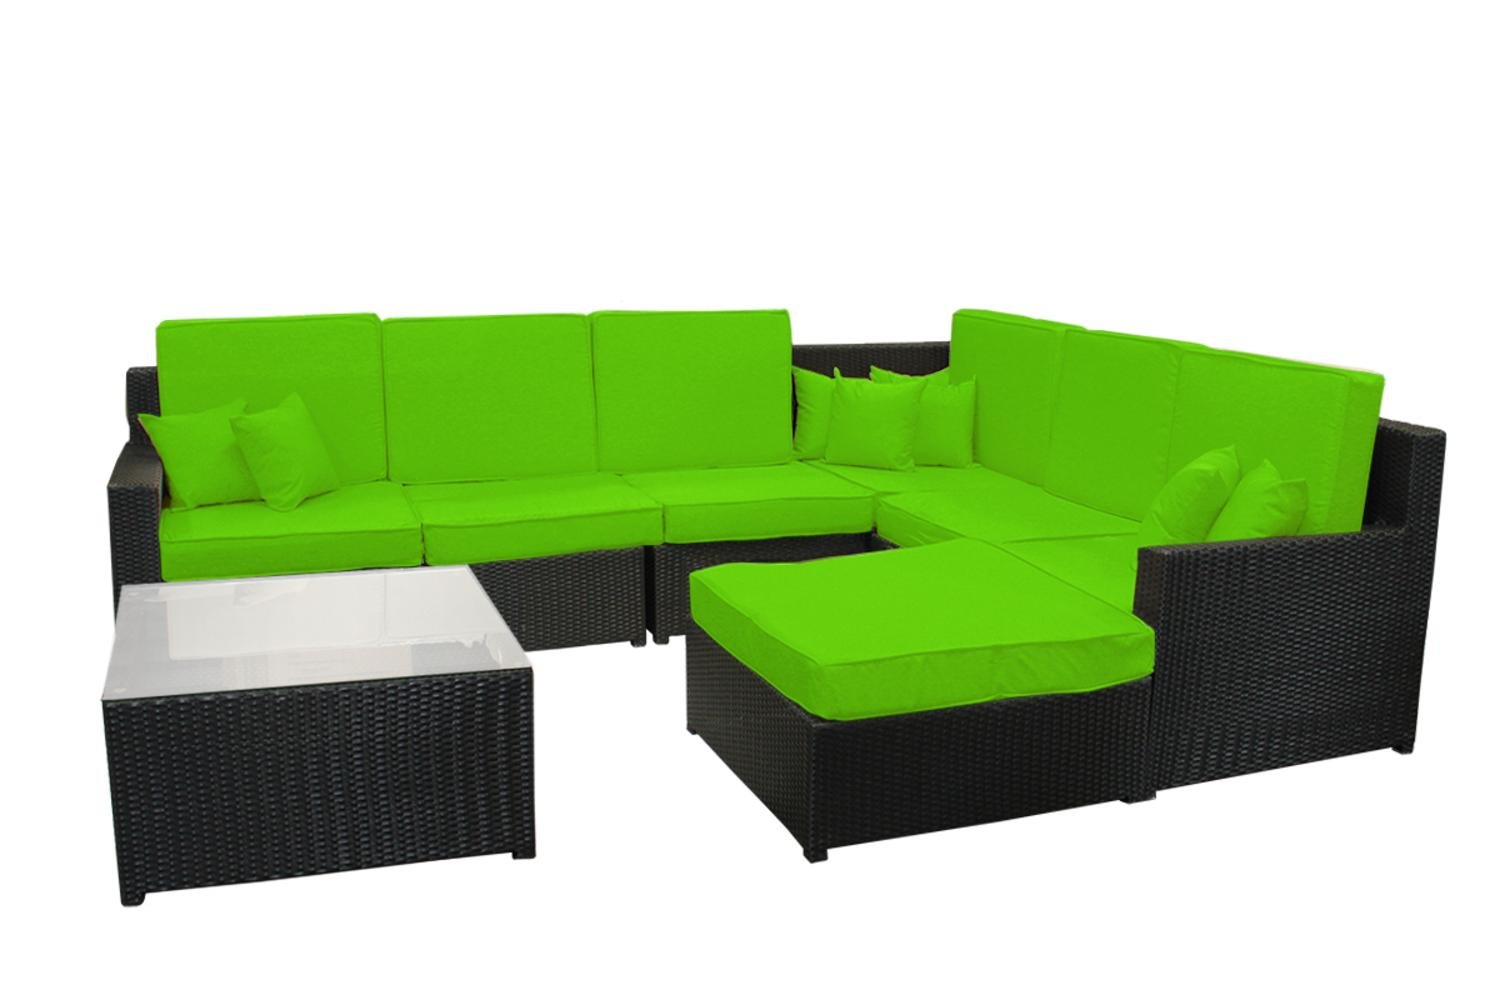 Amazon com 8 piece black resin wicker outdoor furniture sectional sofa table and ottoman set lime green cushions garden outdoor